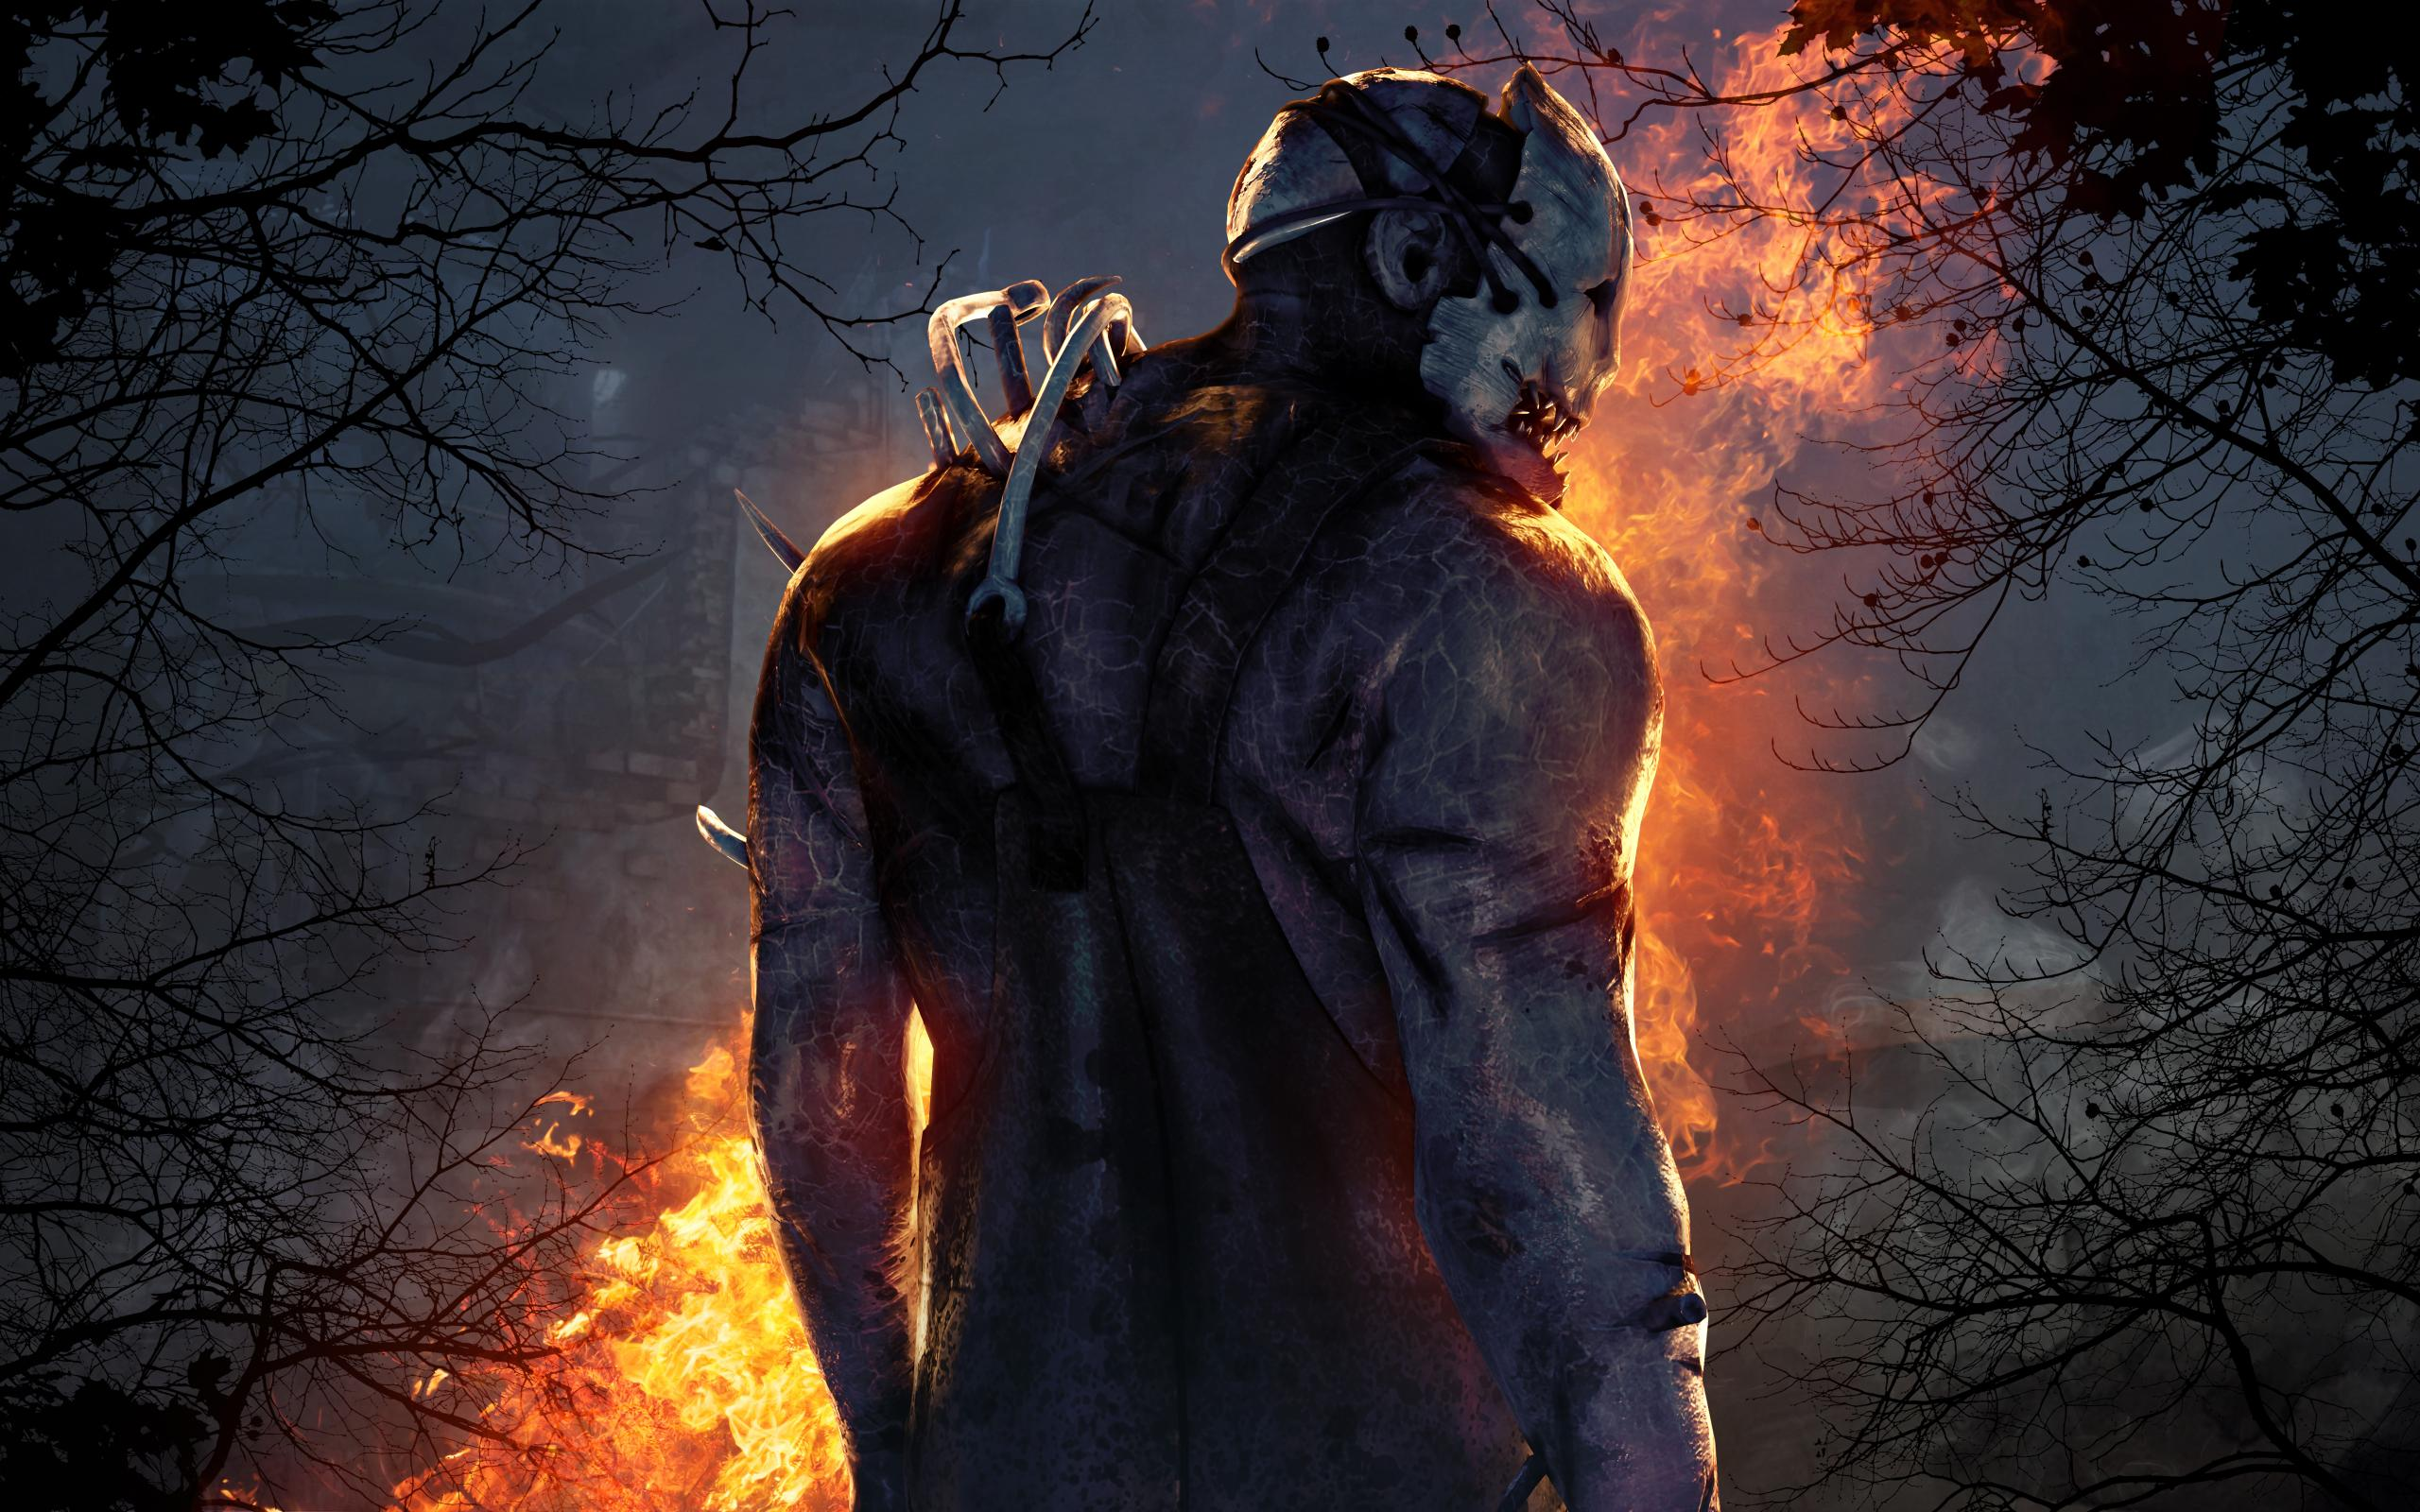 Dead by Daylight, Celeste, Jotun, more coming to Stadia Pro in October thumbnail